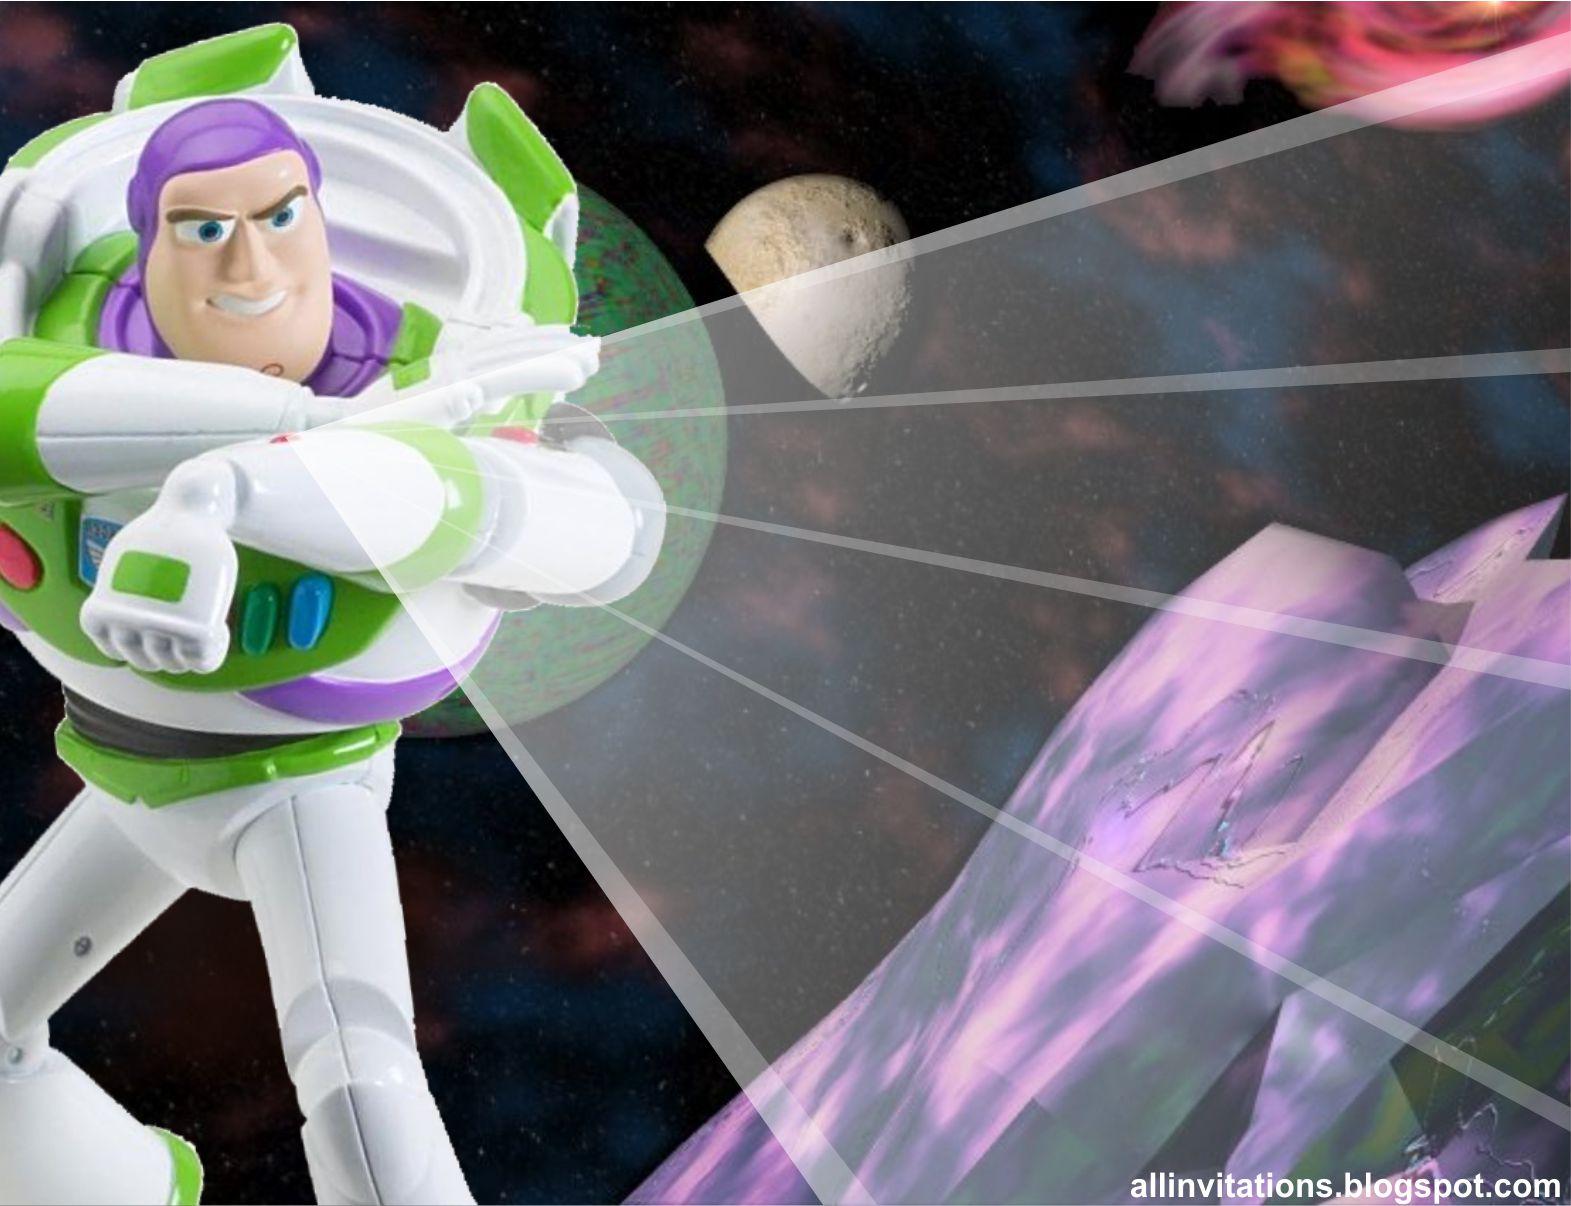 Invitación Cumpleaños Buzz Lightyear | All Invitations